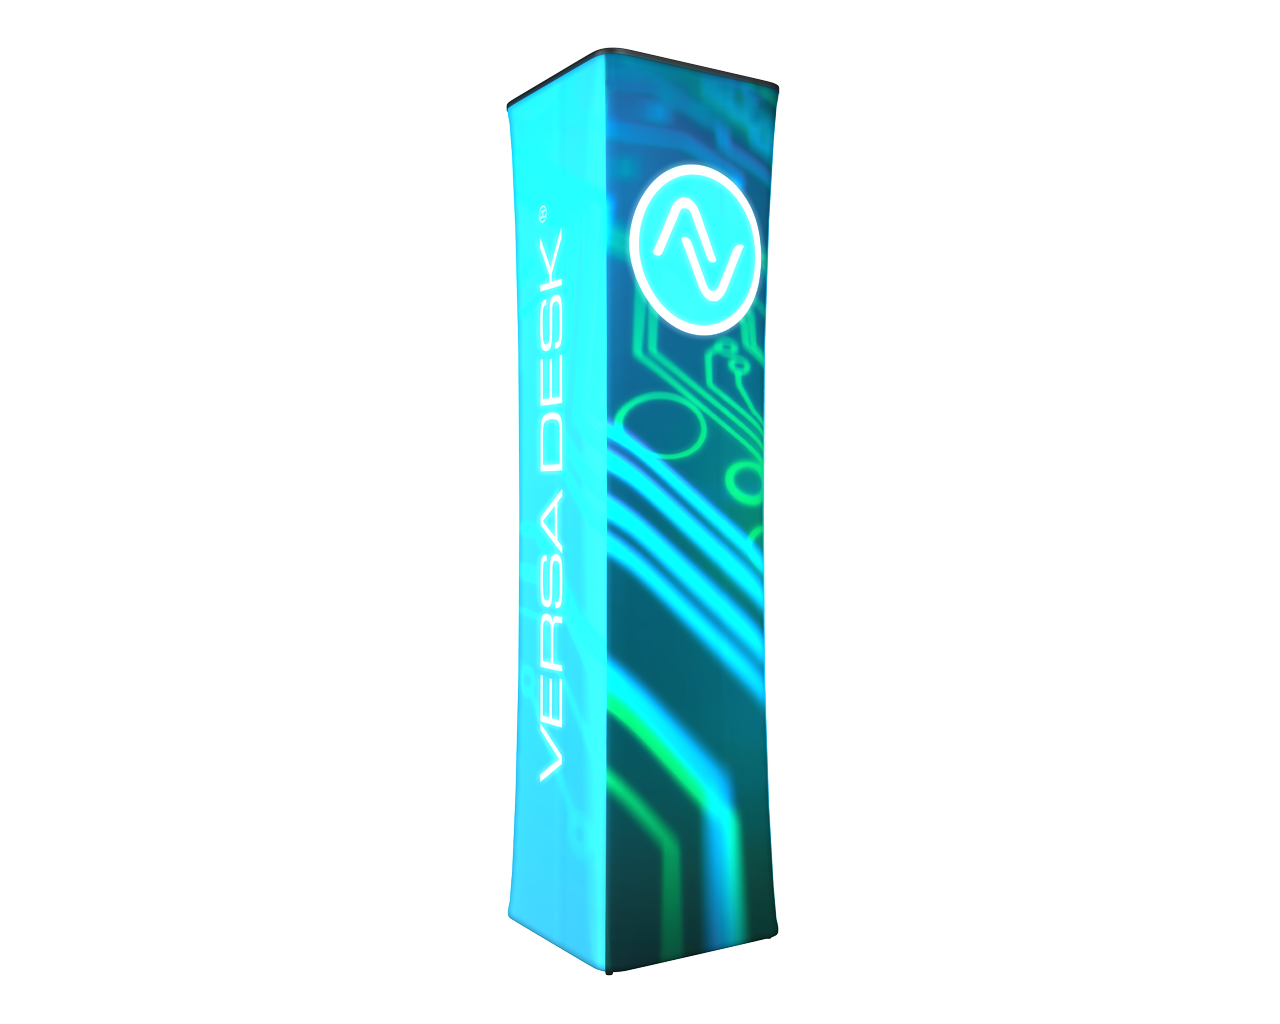 Wavelight Air Backlit Tower Graphic- Square